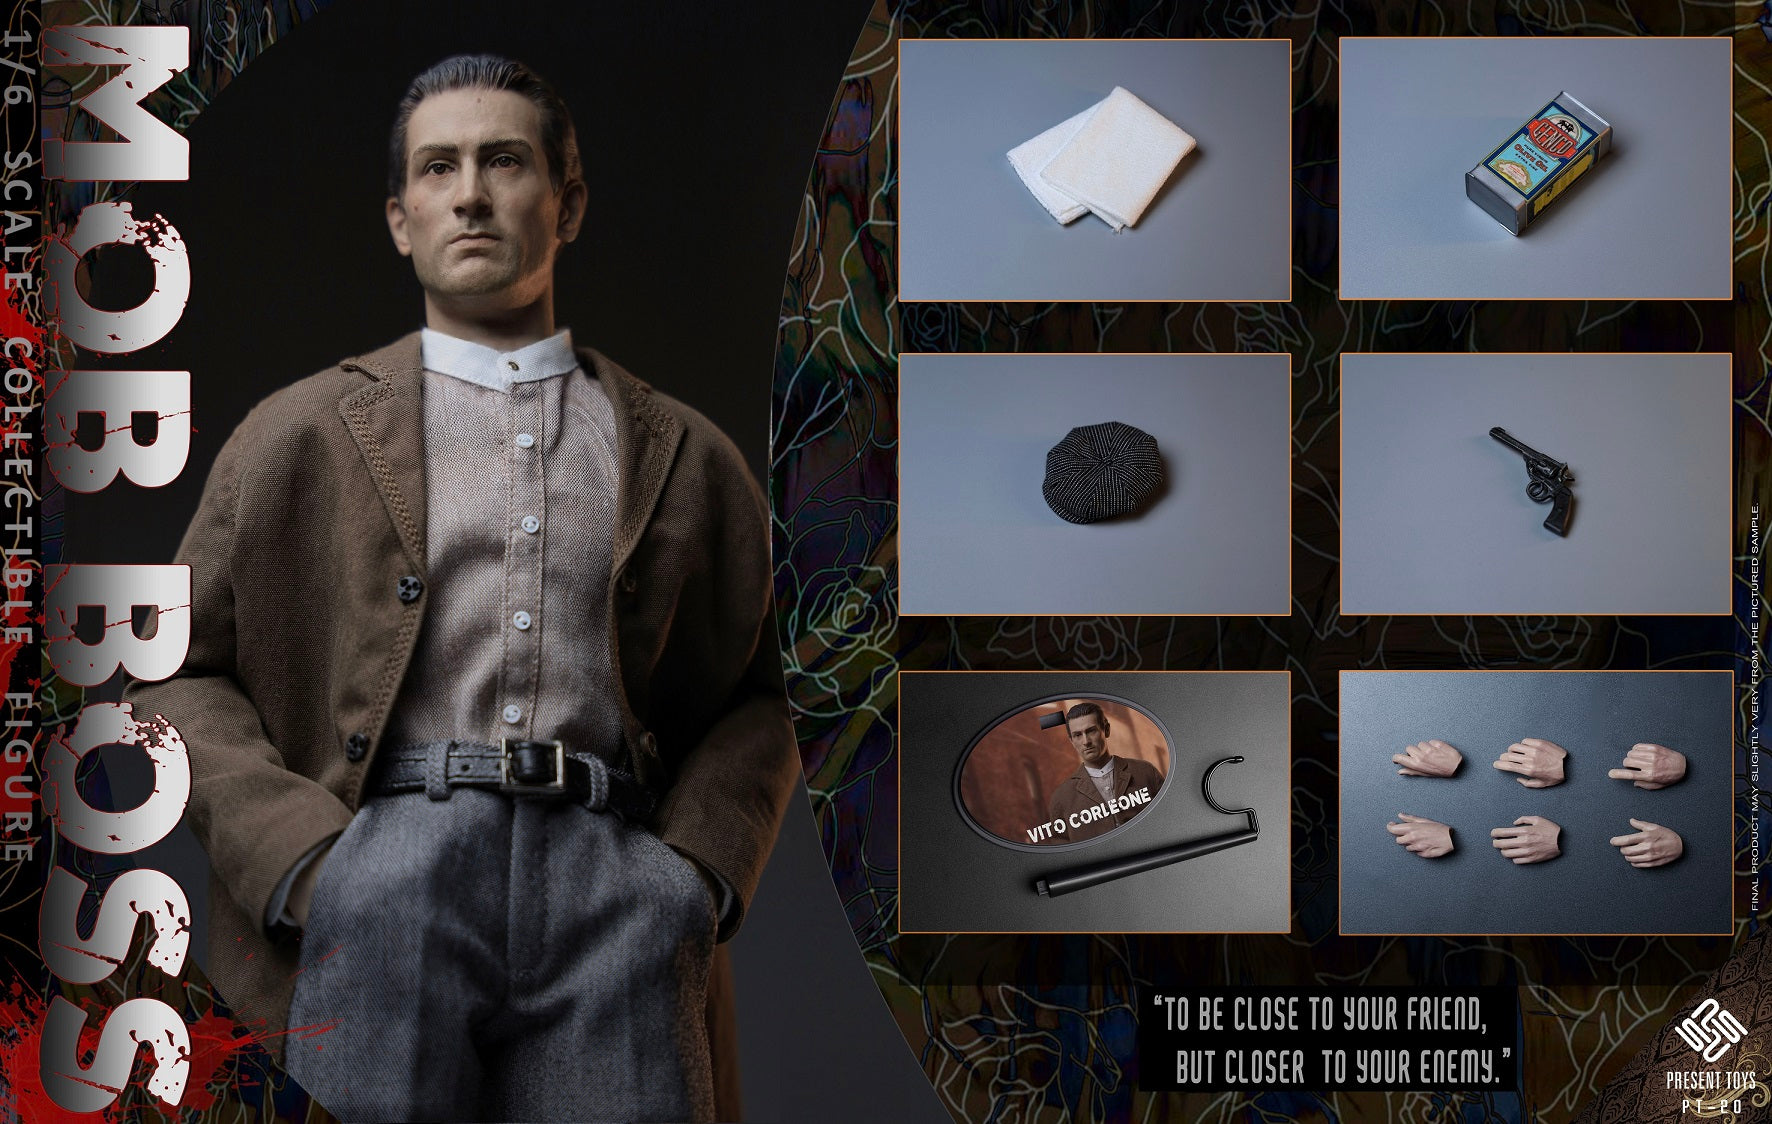 """PRESENT TOYS 1//6 PT-sp09 The second Mob Boss 12/"""" Male Action Figure Set Model"""